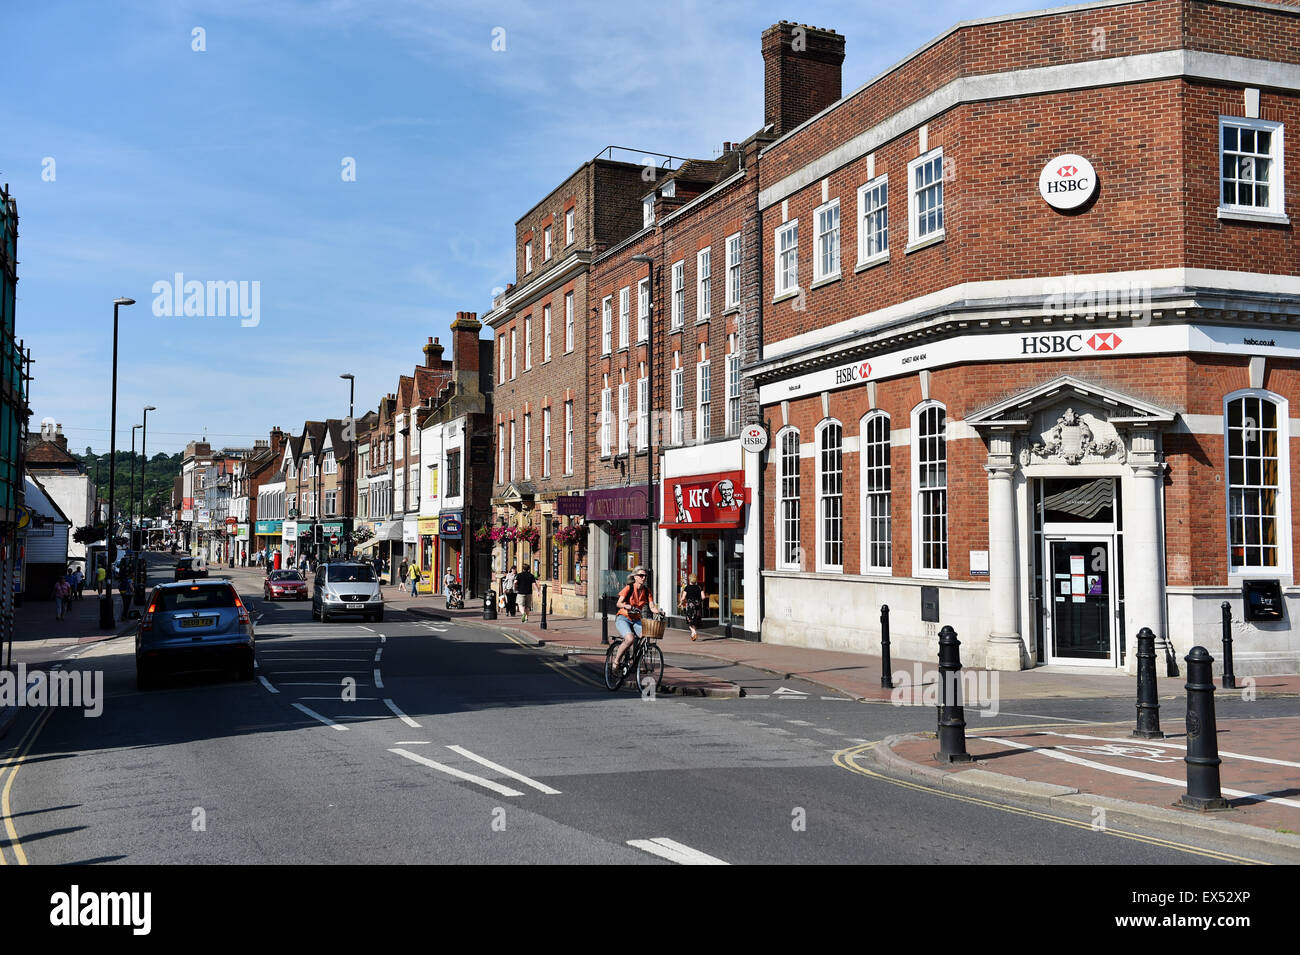 Tonbridge Kent England UK - The High Street with HSBC bank on the corner - Stock Image